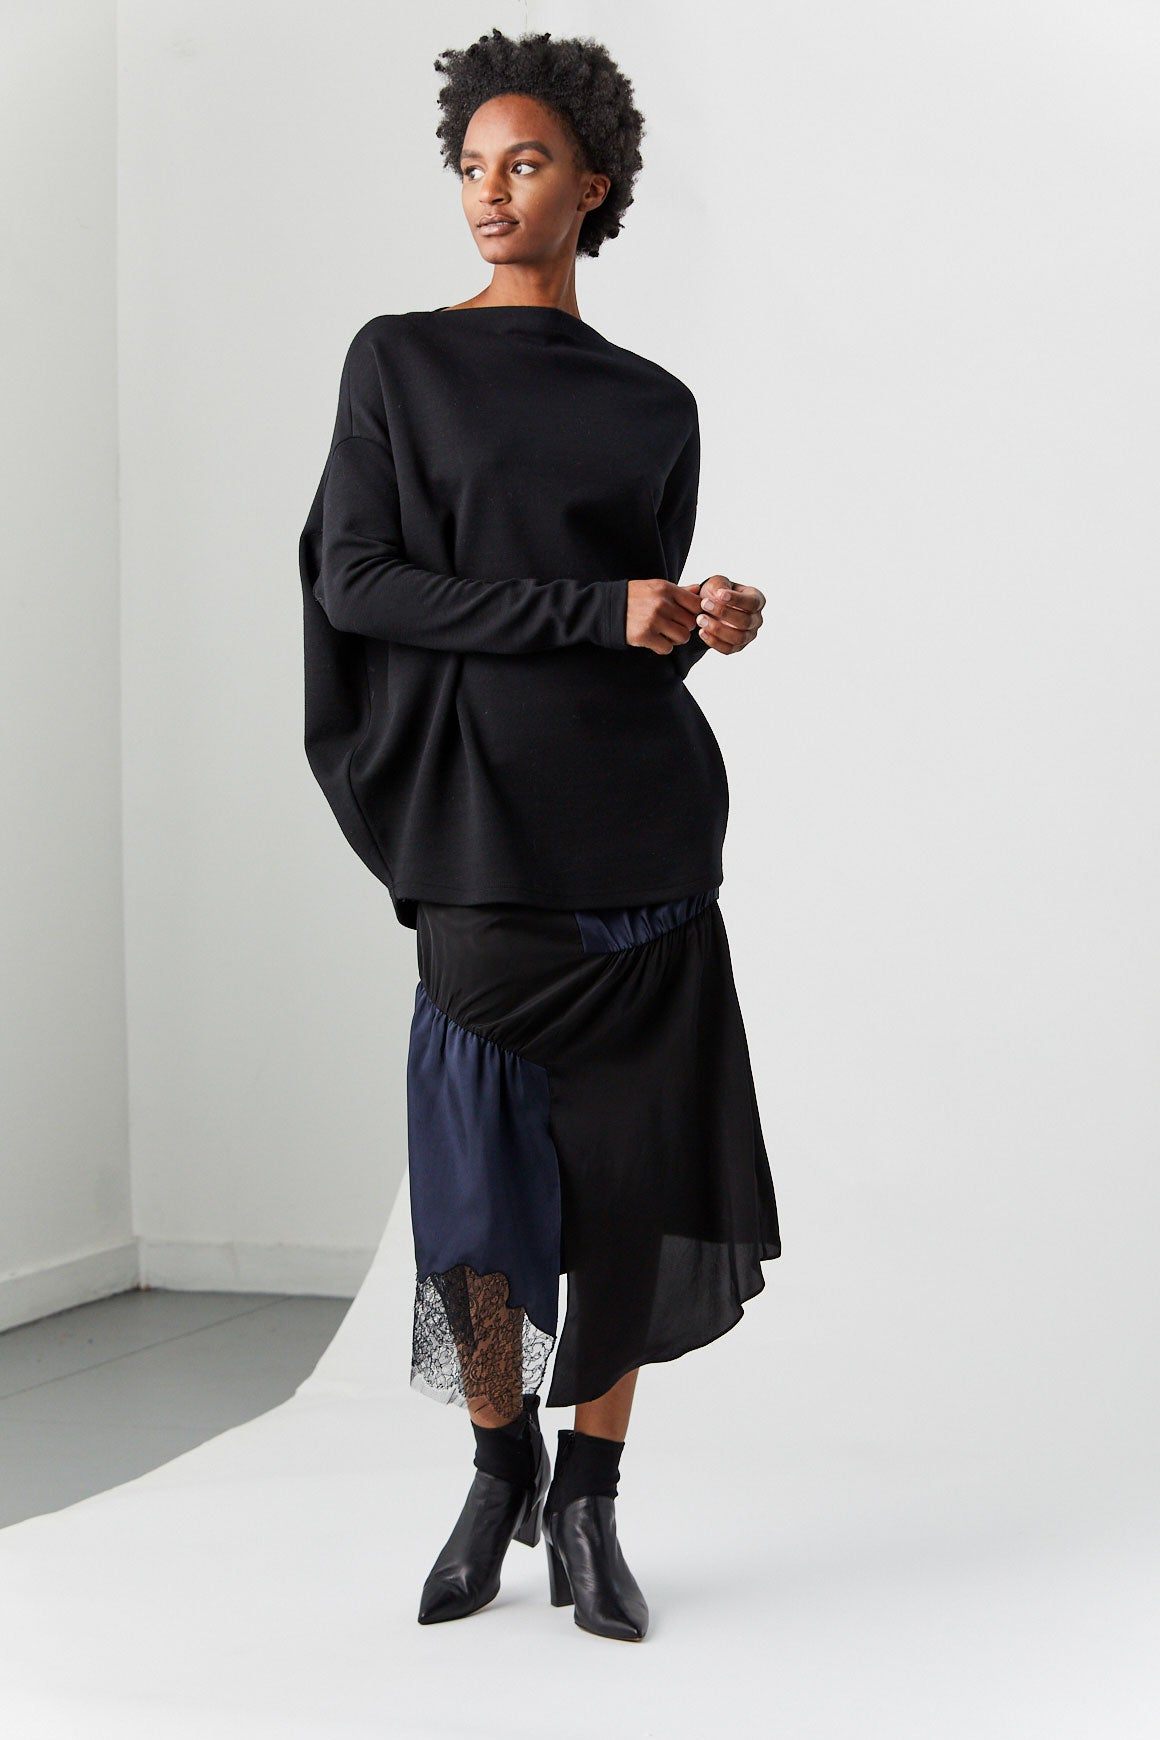 TIBI - Patchwork Silk Skirt, Black & Navy